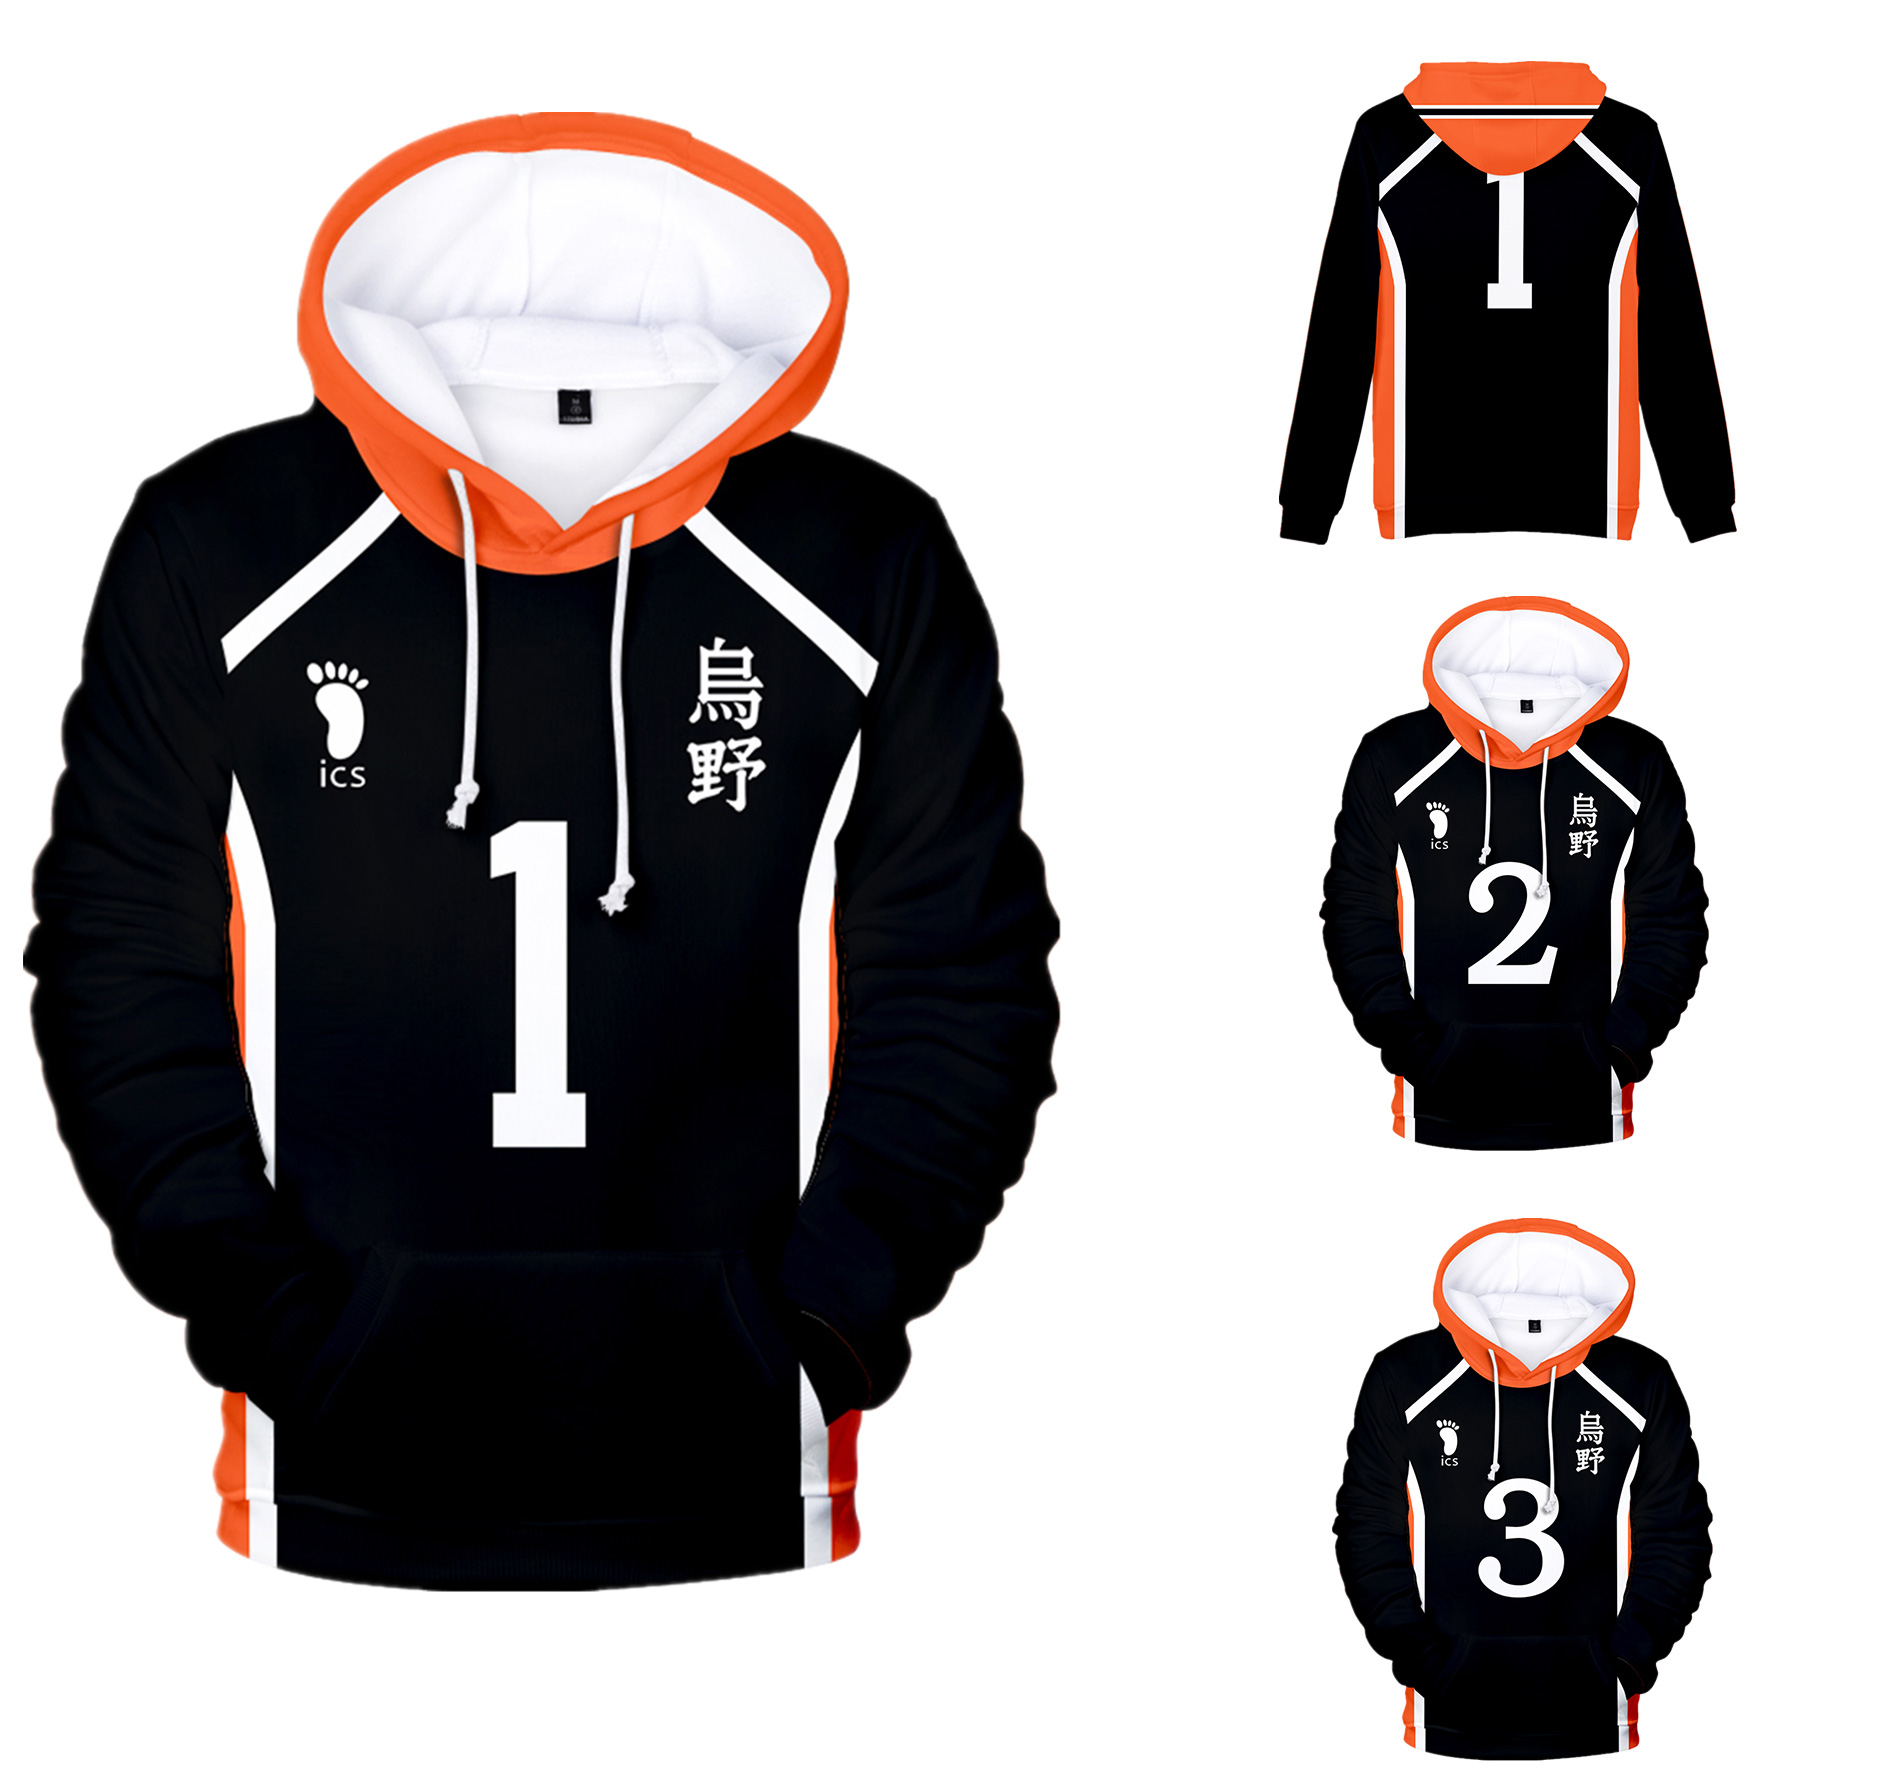 Young Manga Harajuku Hooded Sweatshirt 2020 Haikyuu!! Cool Fashion 3D Sawamura Daichi  Adult Kids Pullovers Hoodies Sweatshirts